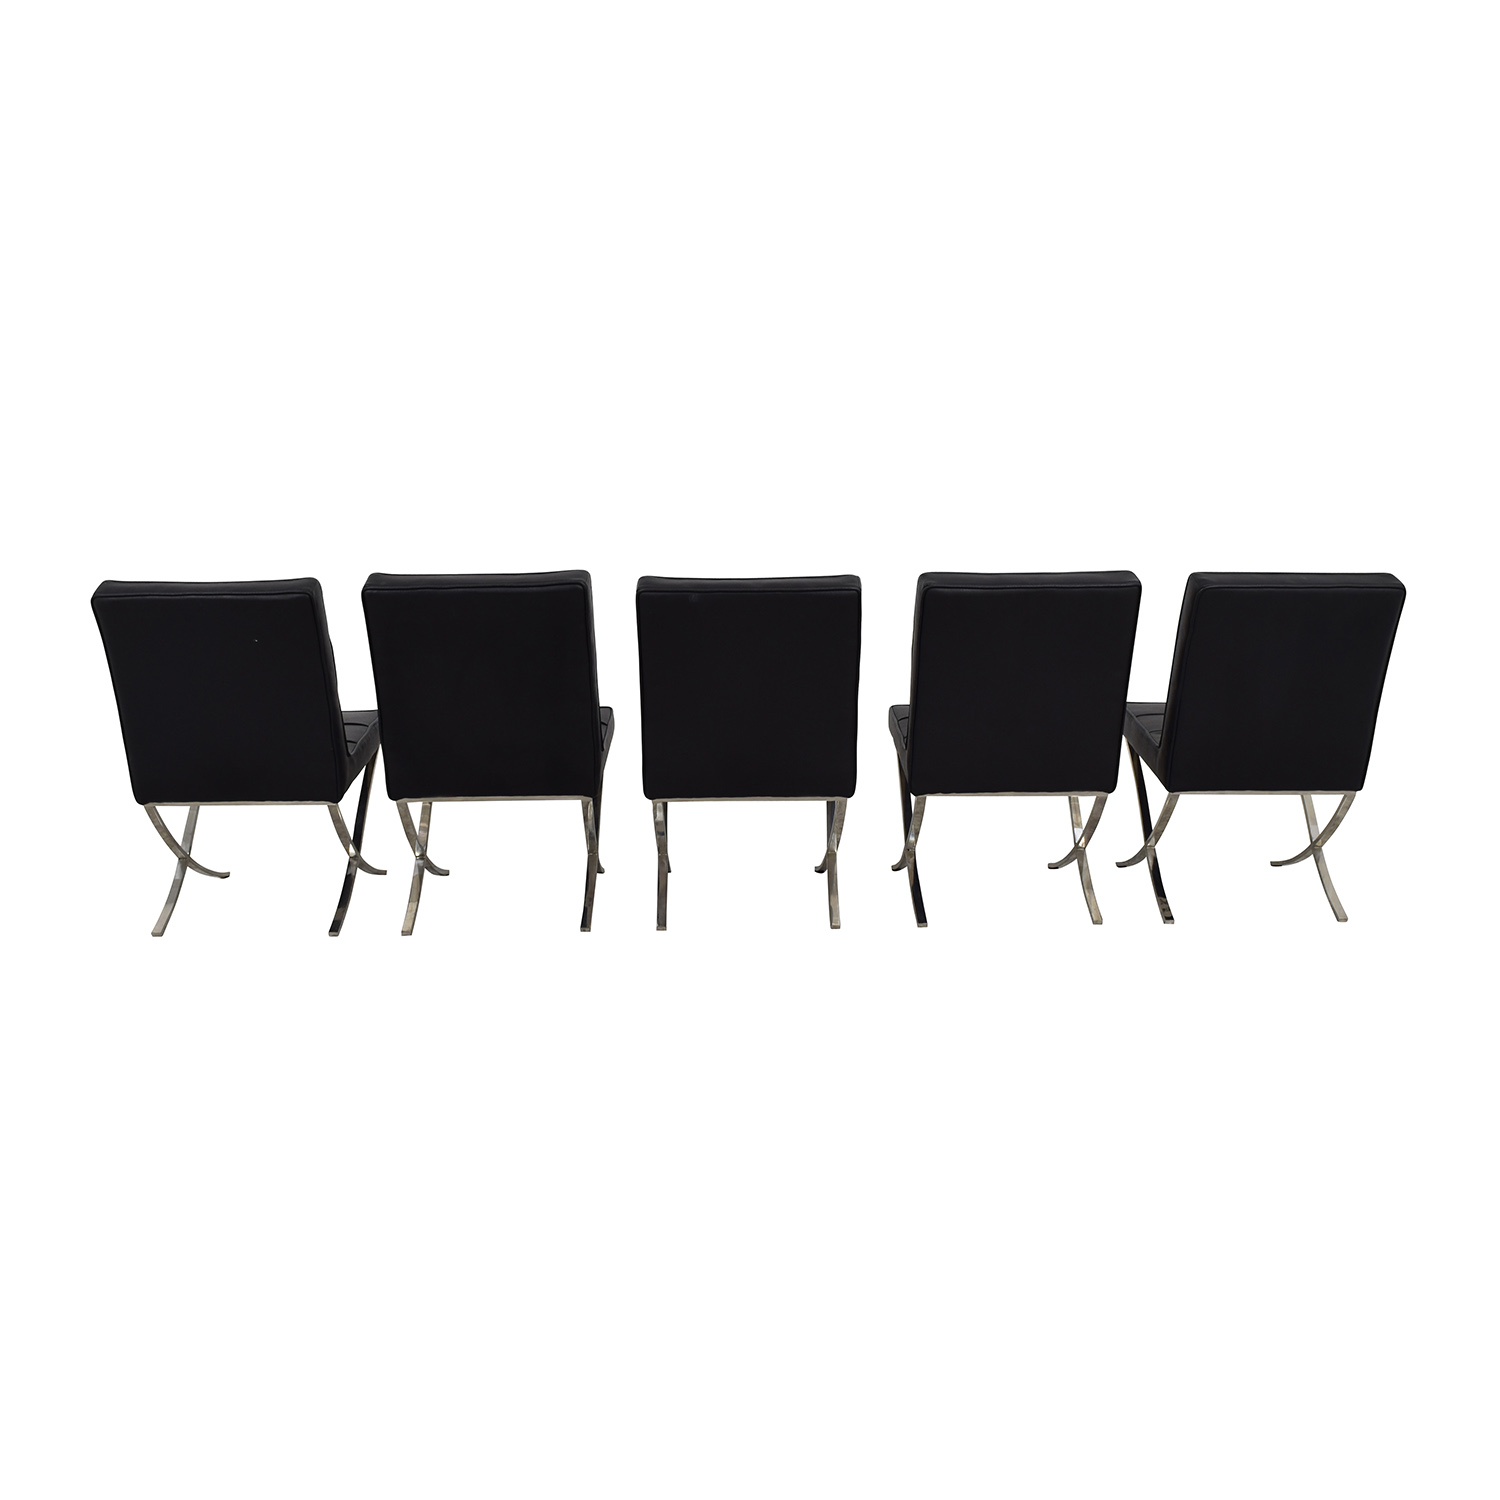 buy West Elm Black Tufted Leather Chairs West Elm